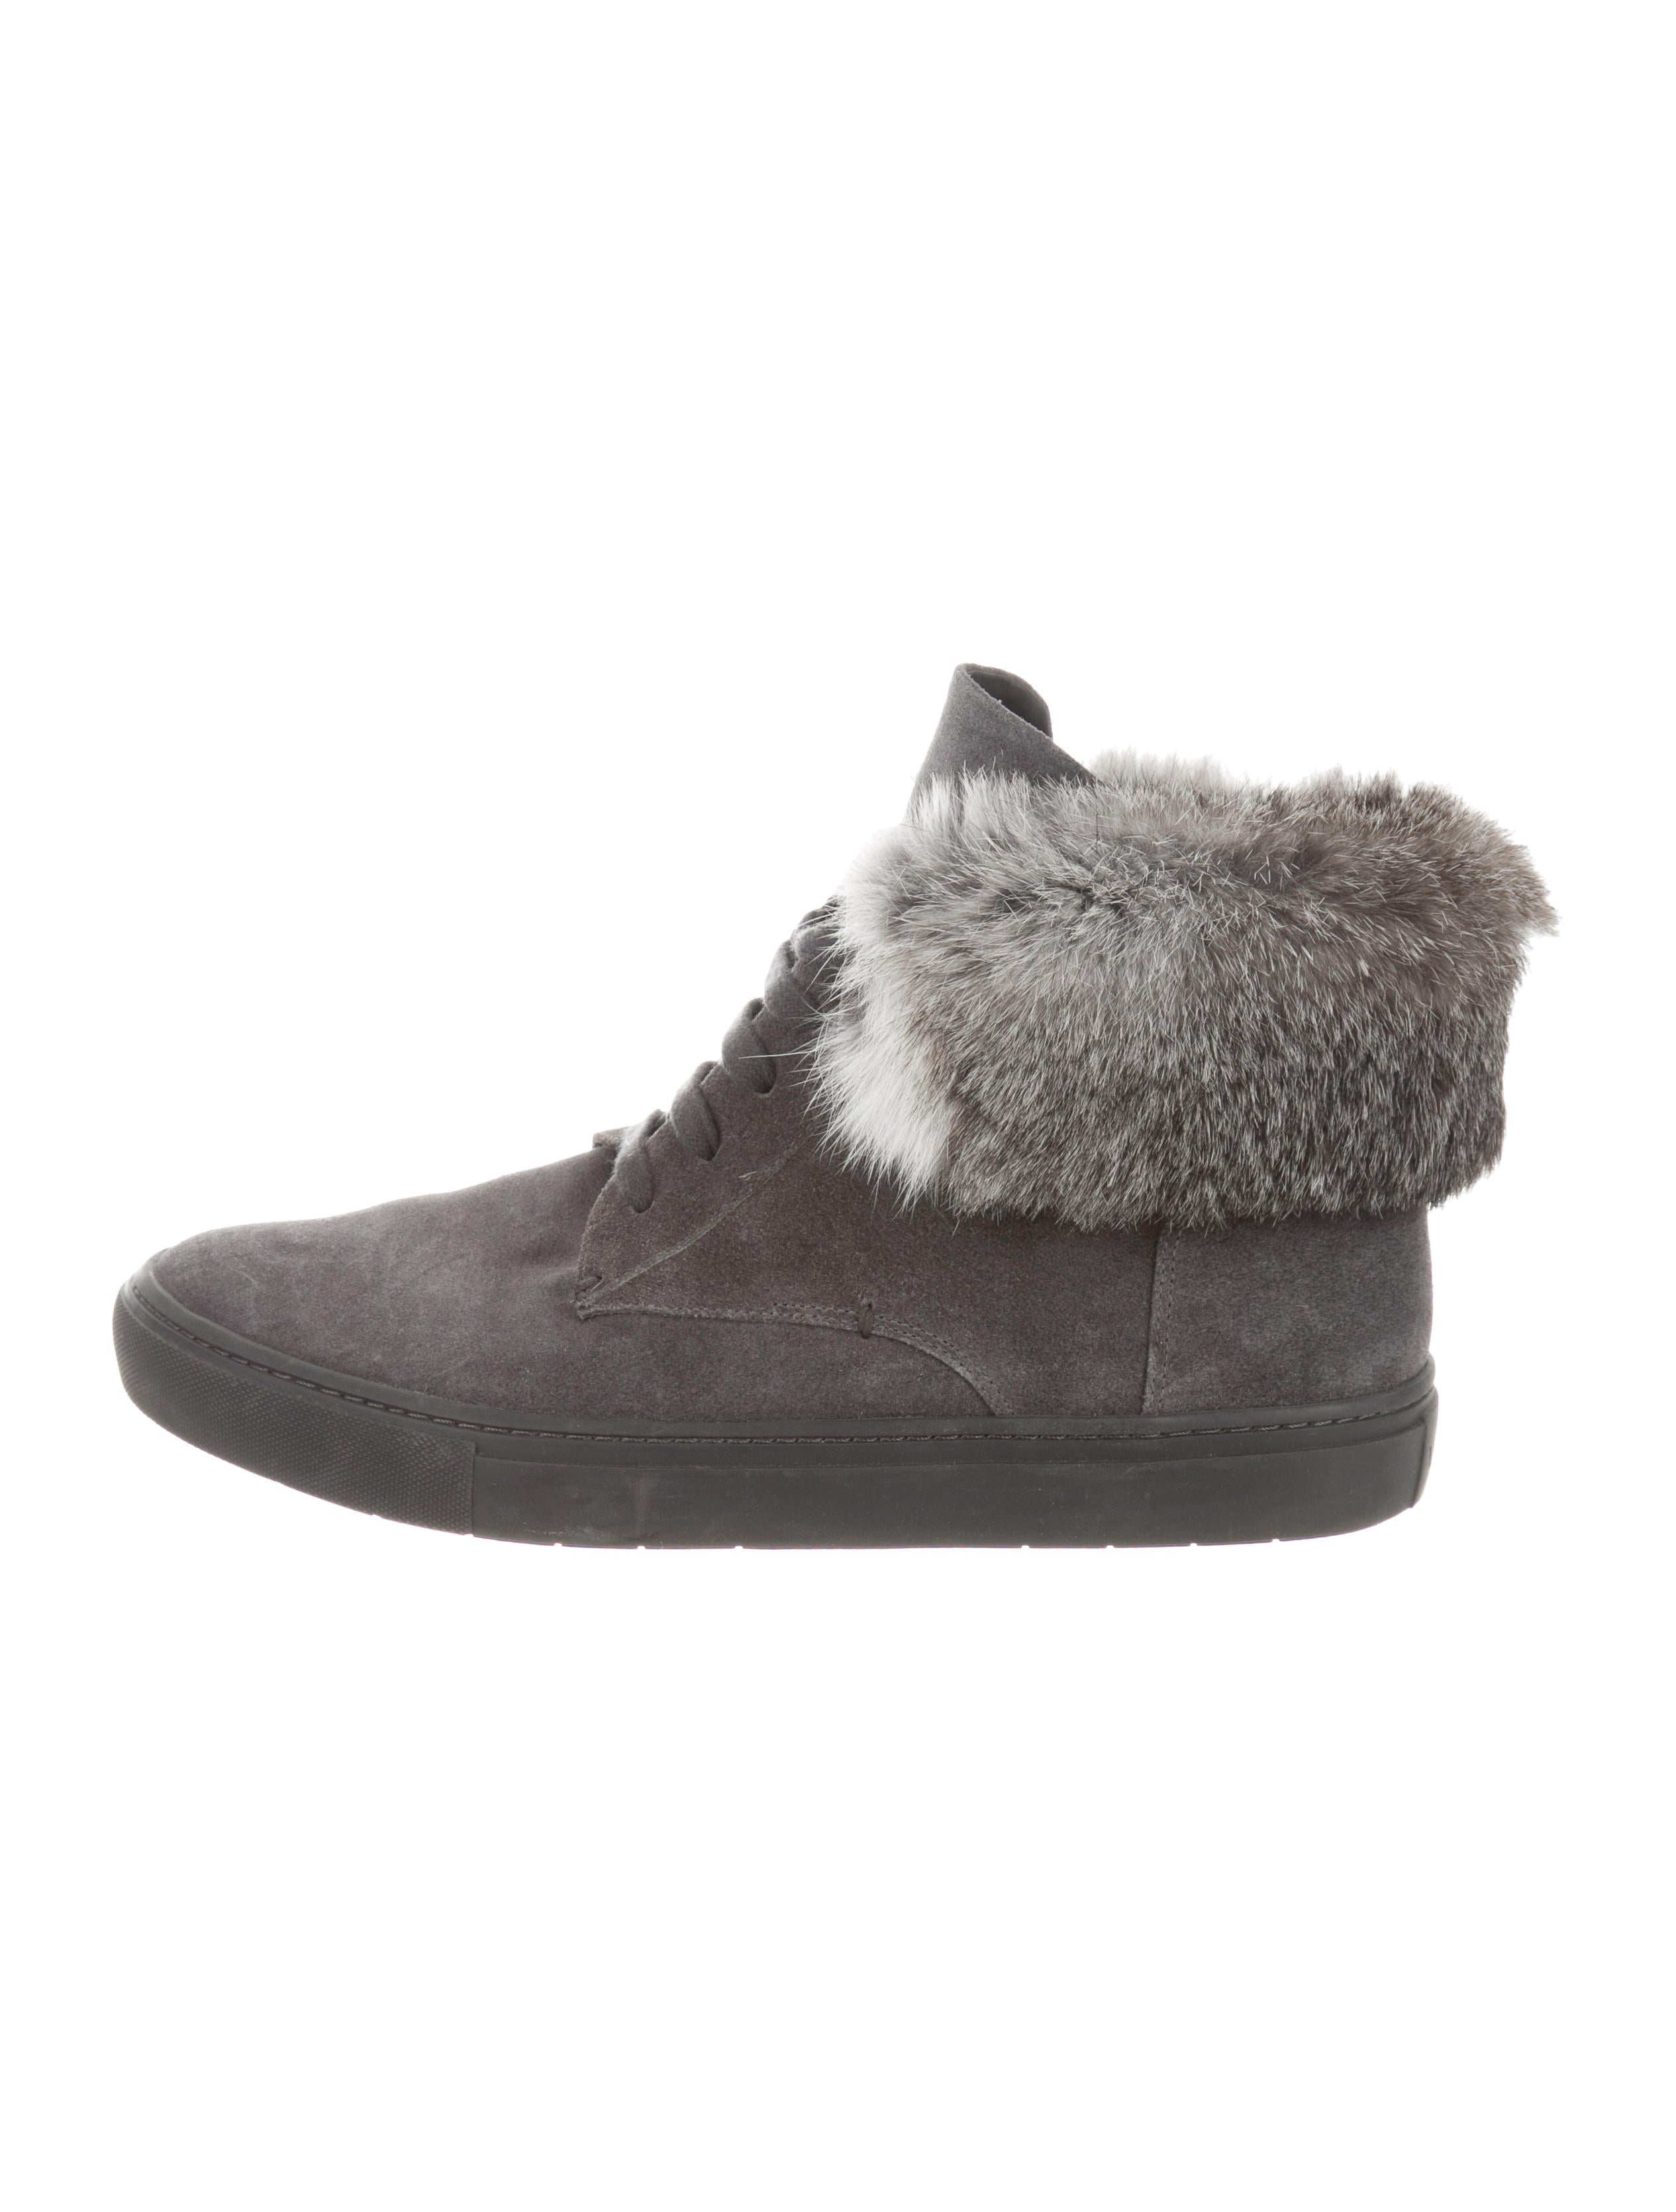 Vince Fur-Trimmed Chukka Sneakers big discount online for sale official site for sale footlocker outlet buy cheap sale clearance RqHrE